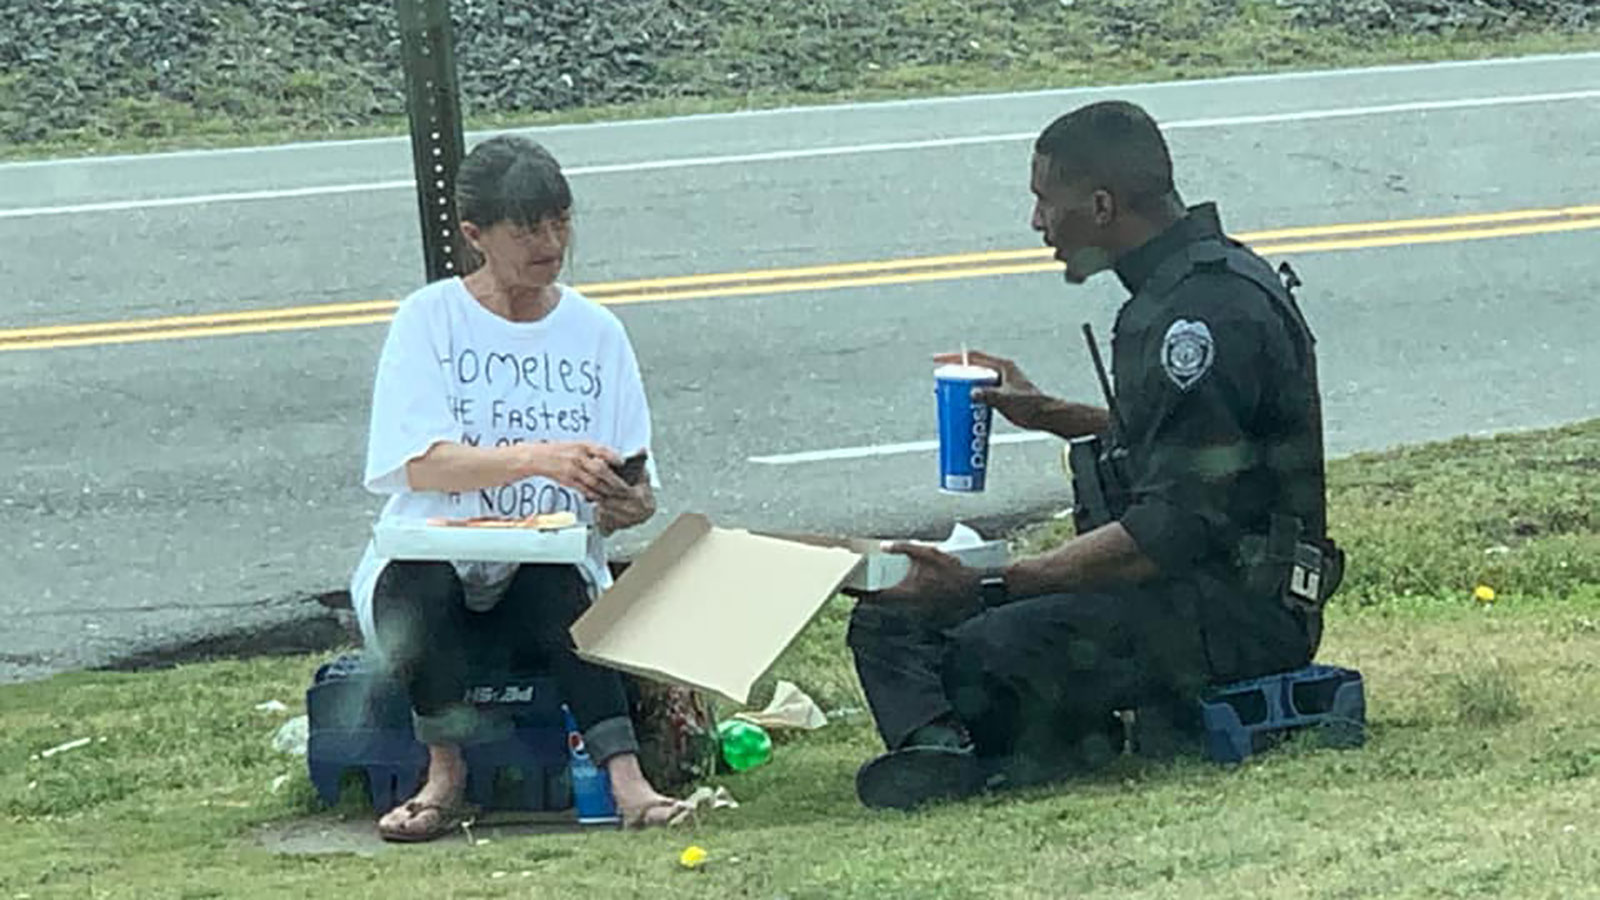 A North Carolina police officer spent his lunch break sharing pizza with a homeless woman and it was captured in a heartwarming photo (Photo: Chris Barnes)